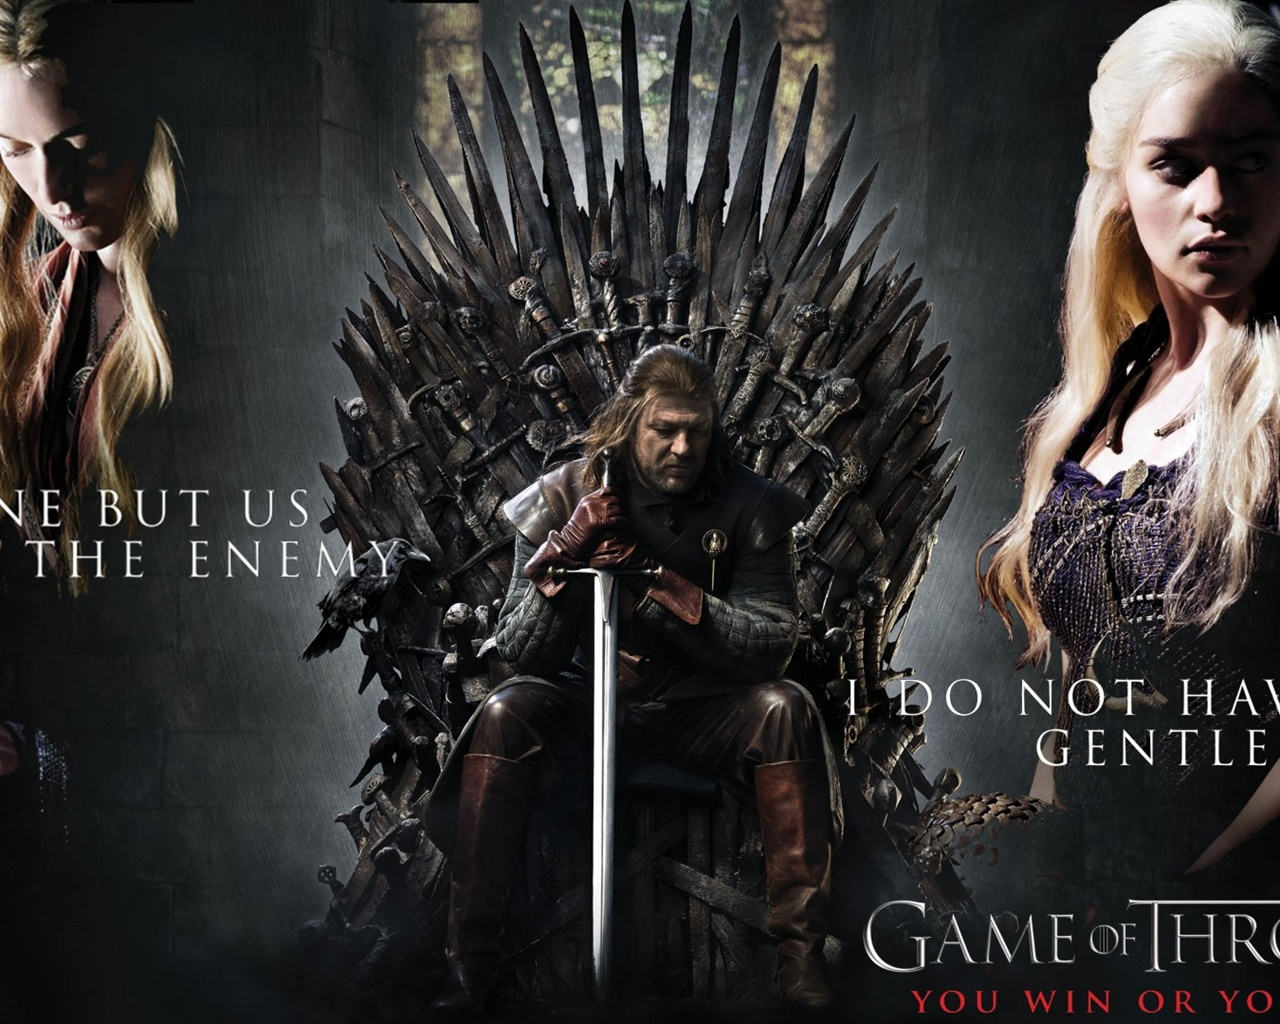 Game of Thrones HD 1280x1024jpg 1280x1024